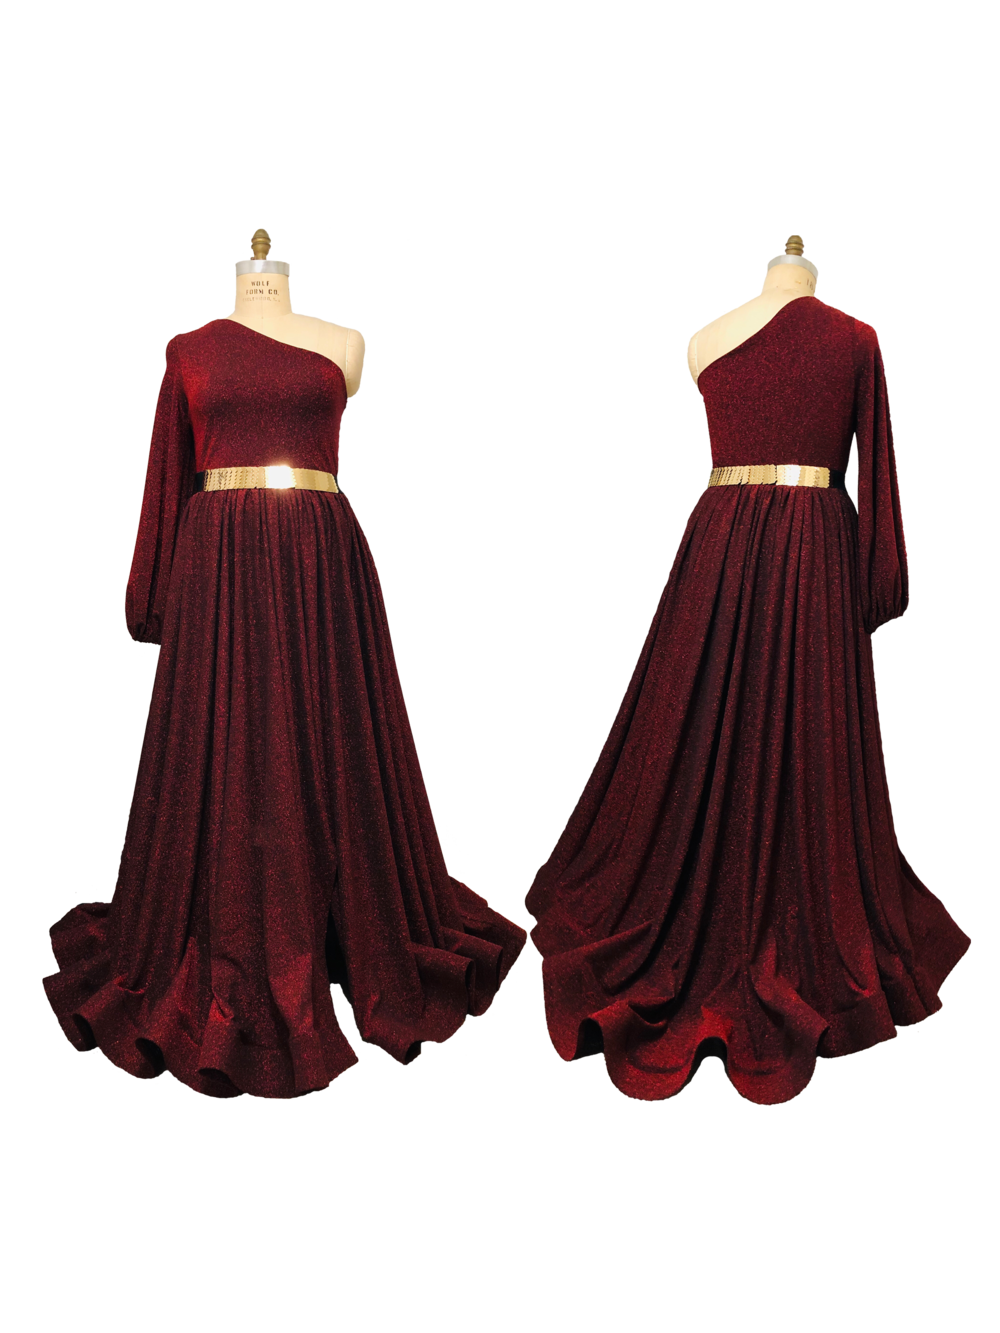 Red Sparkle One Shoulder Maxi Dress with pockets, split, and long train